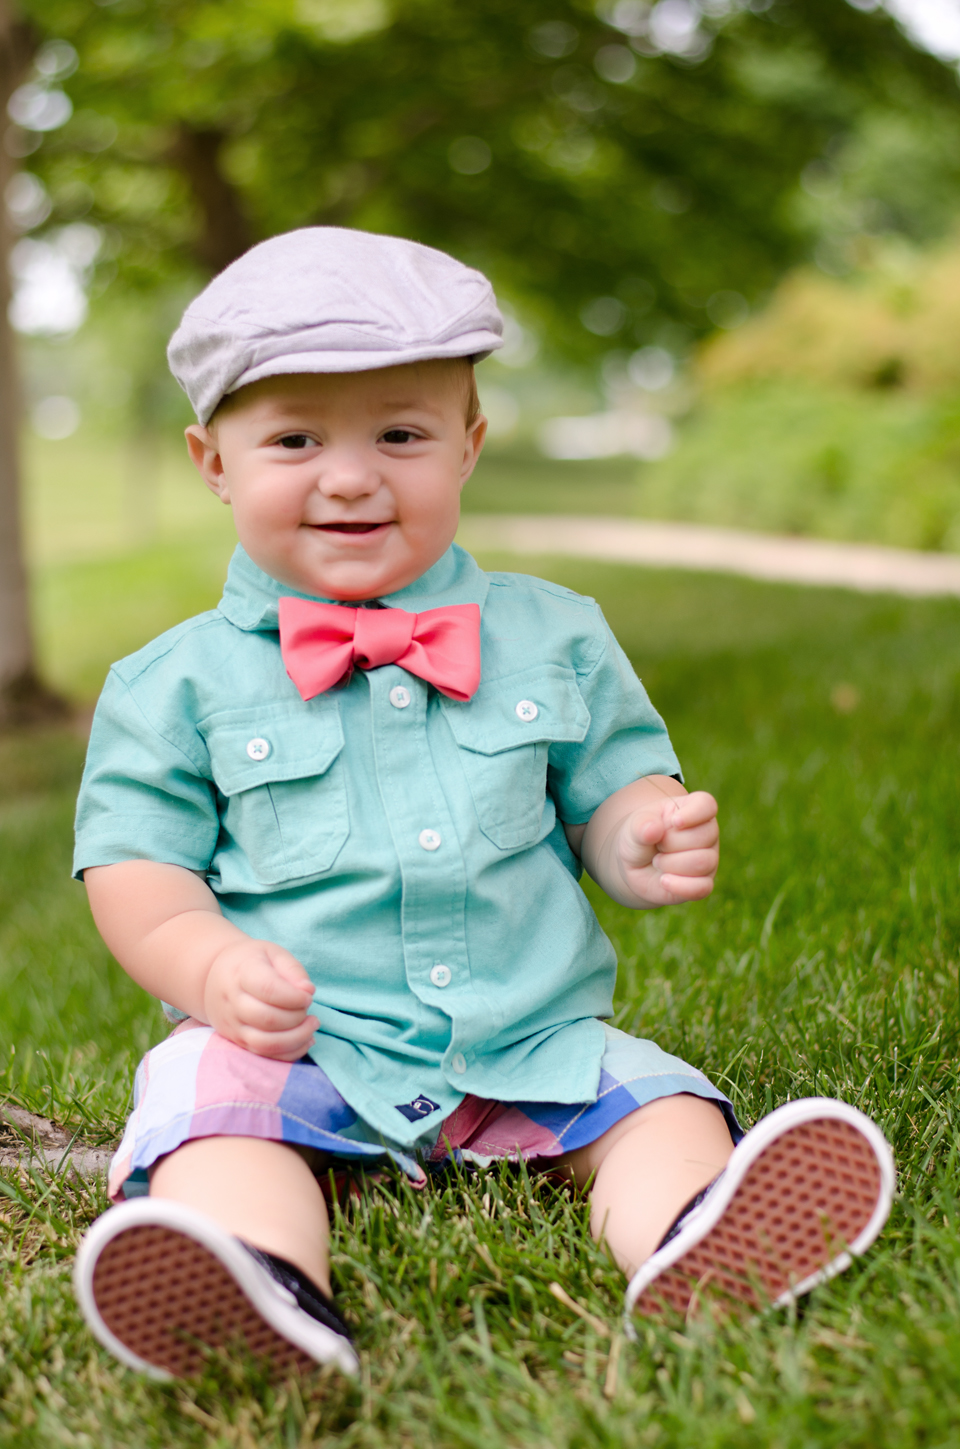 Miles   10 months - Sporting his new outfit picked out by Bethany and the hand-made coral bowtie I diy for this session - My favorite shot